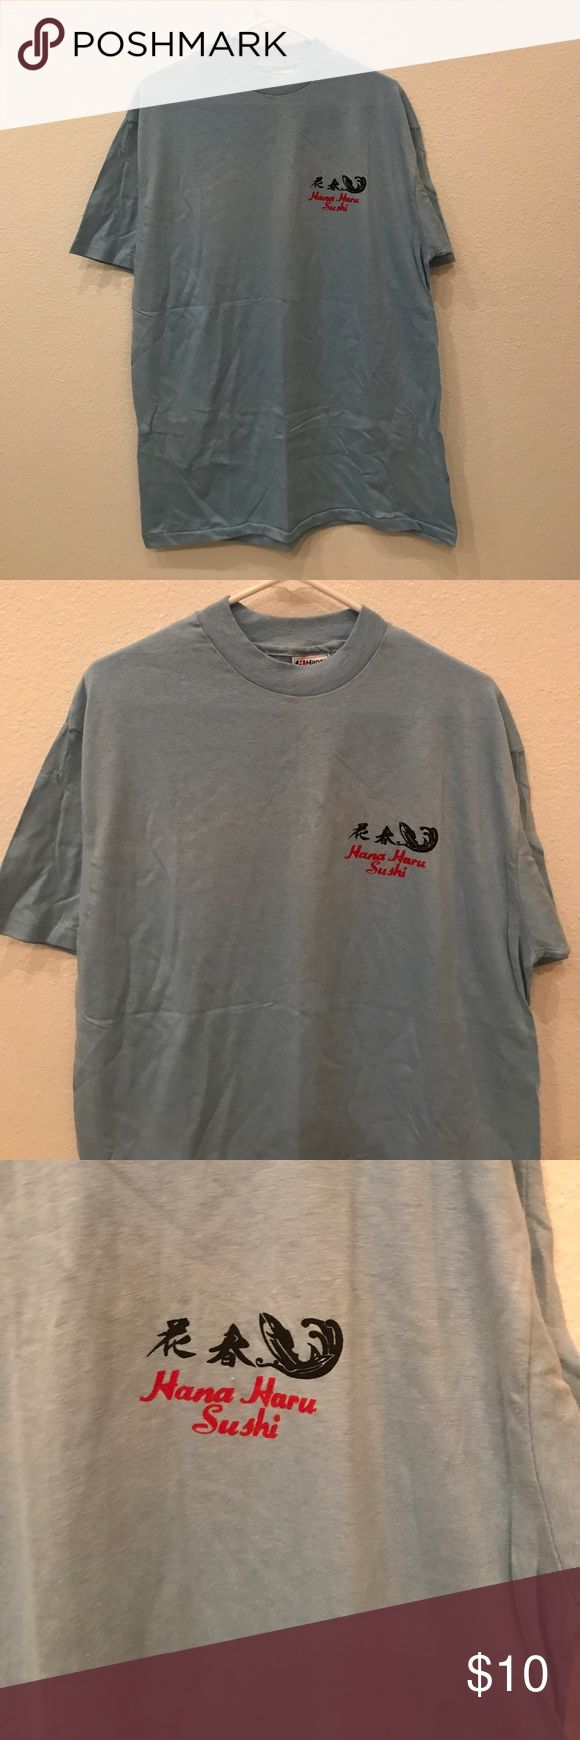 Vintage Hana Haru Sushi Blue T-Shirt Size XL Vintage Hana Haru Blue T-Shirt Size XL, Brand New, Never Worn or Used. All bundles of 2 or more receive 20% off. Closet full of new, used and vintage Vans, Skate and surf companies, jewelry, phone cases, shoes and more Hana Haru Shirts Tees - Short Sleeve